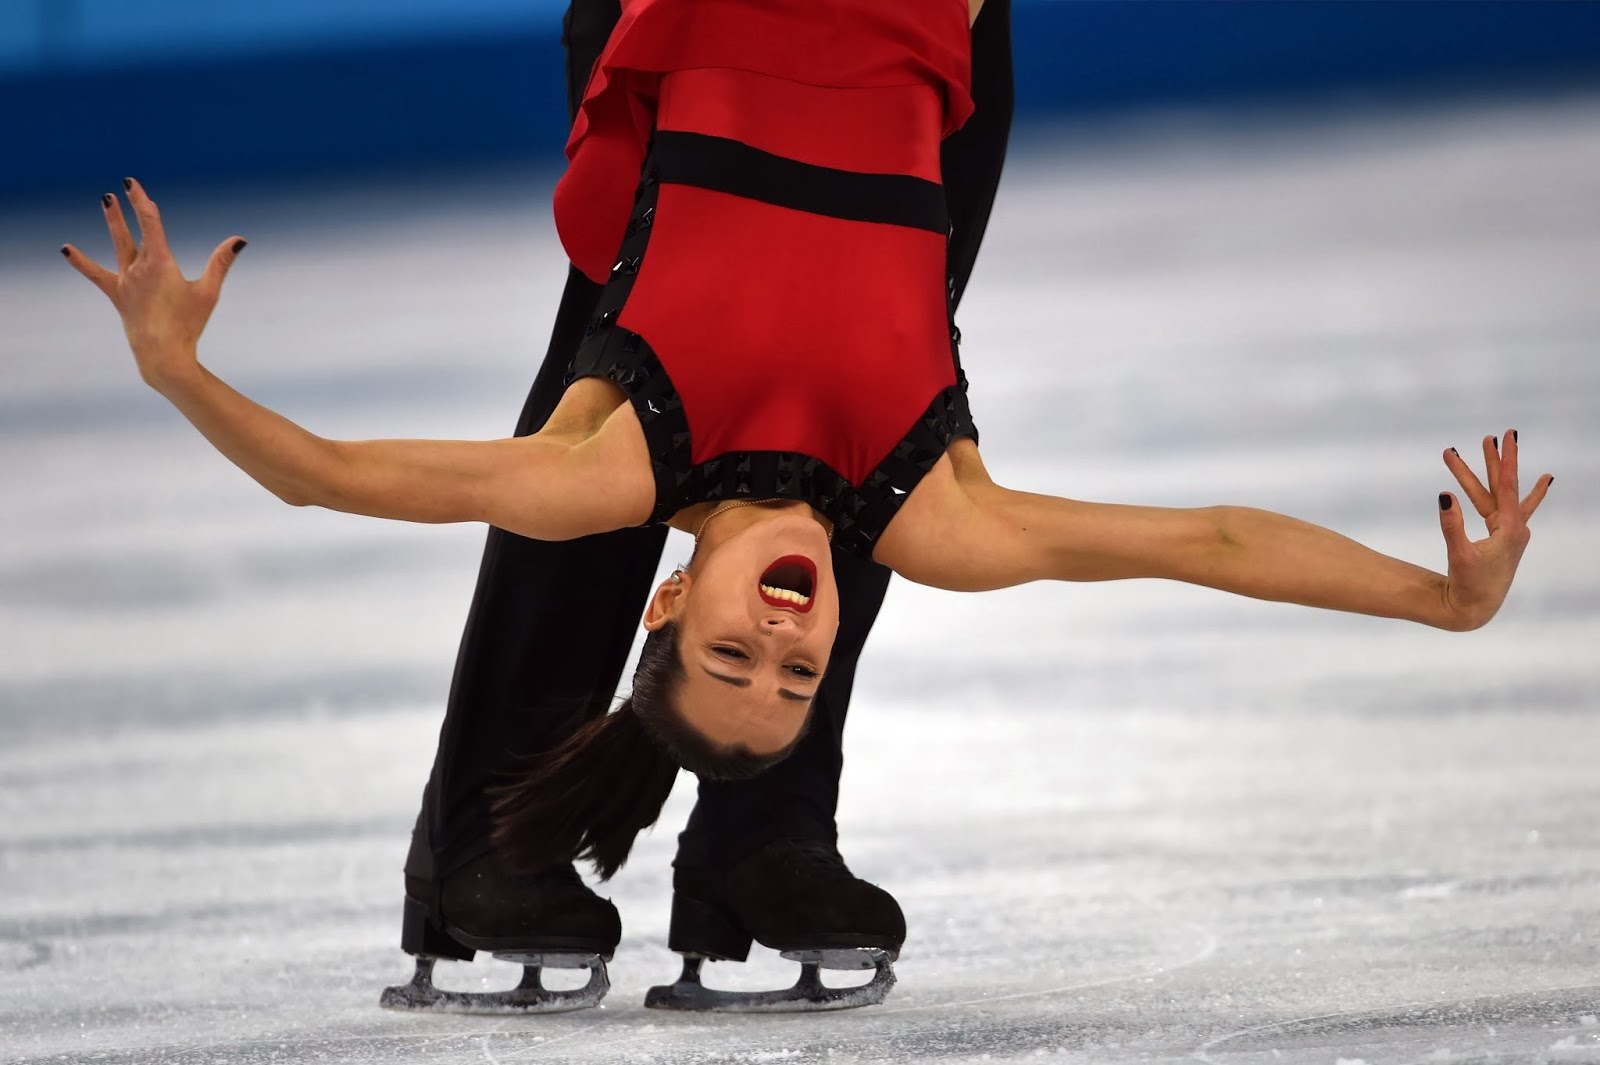 Figure Skating Pairs, Sochi Olympics, Sochi Winter Olympics, Olympics 2014, Russia, Winner, Germany, Sports, Figure Skating, Performance, Competition, Medalists, Gold medal, China, Canada, Italy, Israel, Sochi,